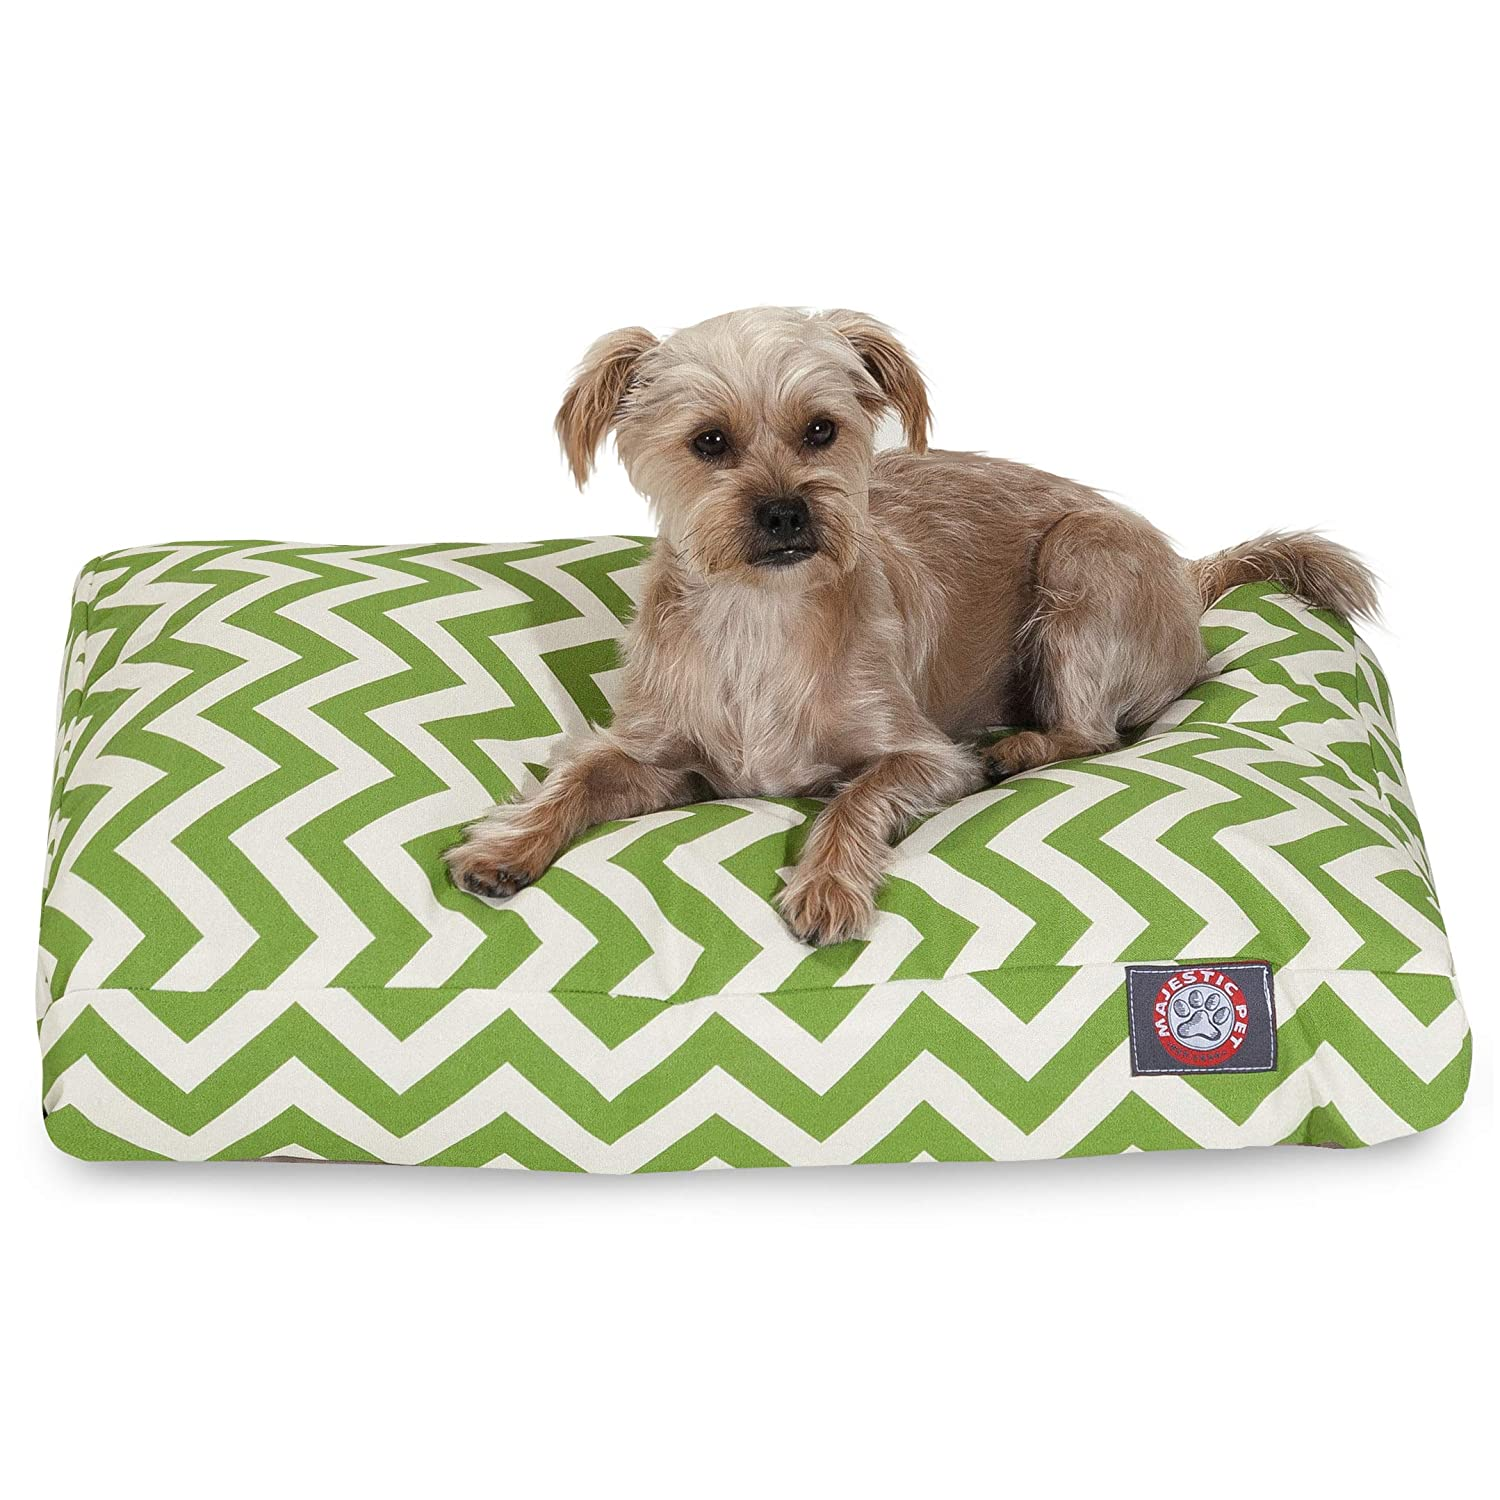 Sage Green S Sage Green S Majestic Pet Sage Chevron Small Rectangle Indoor Outdoor Pet Dog Bed With Removable Washable Cover Products